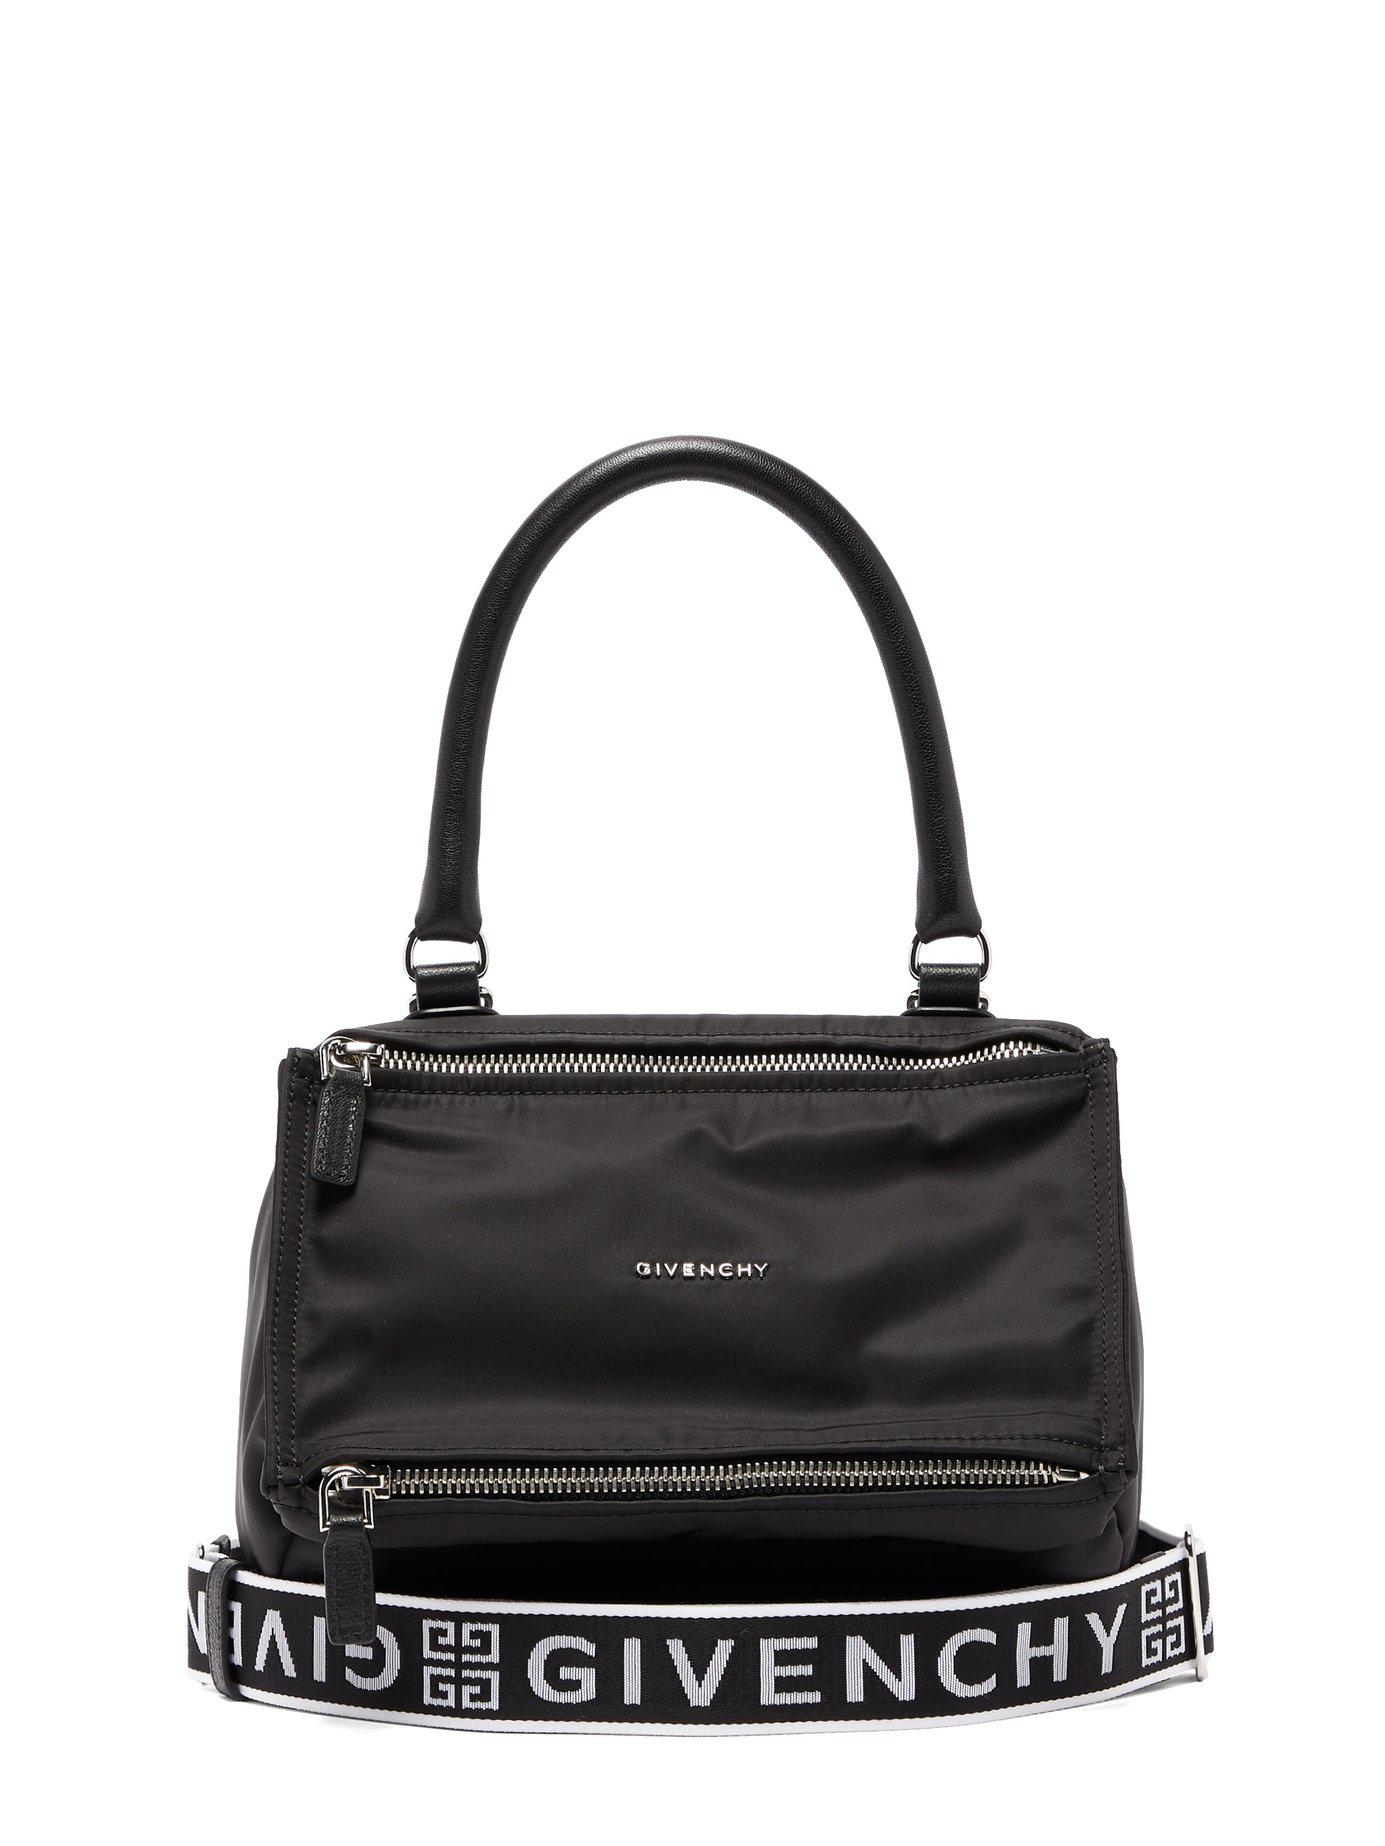 01cef634d565 Givenchy - Black Pandora Nylon Bag - Lyst. View fullscreen